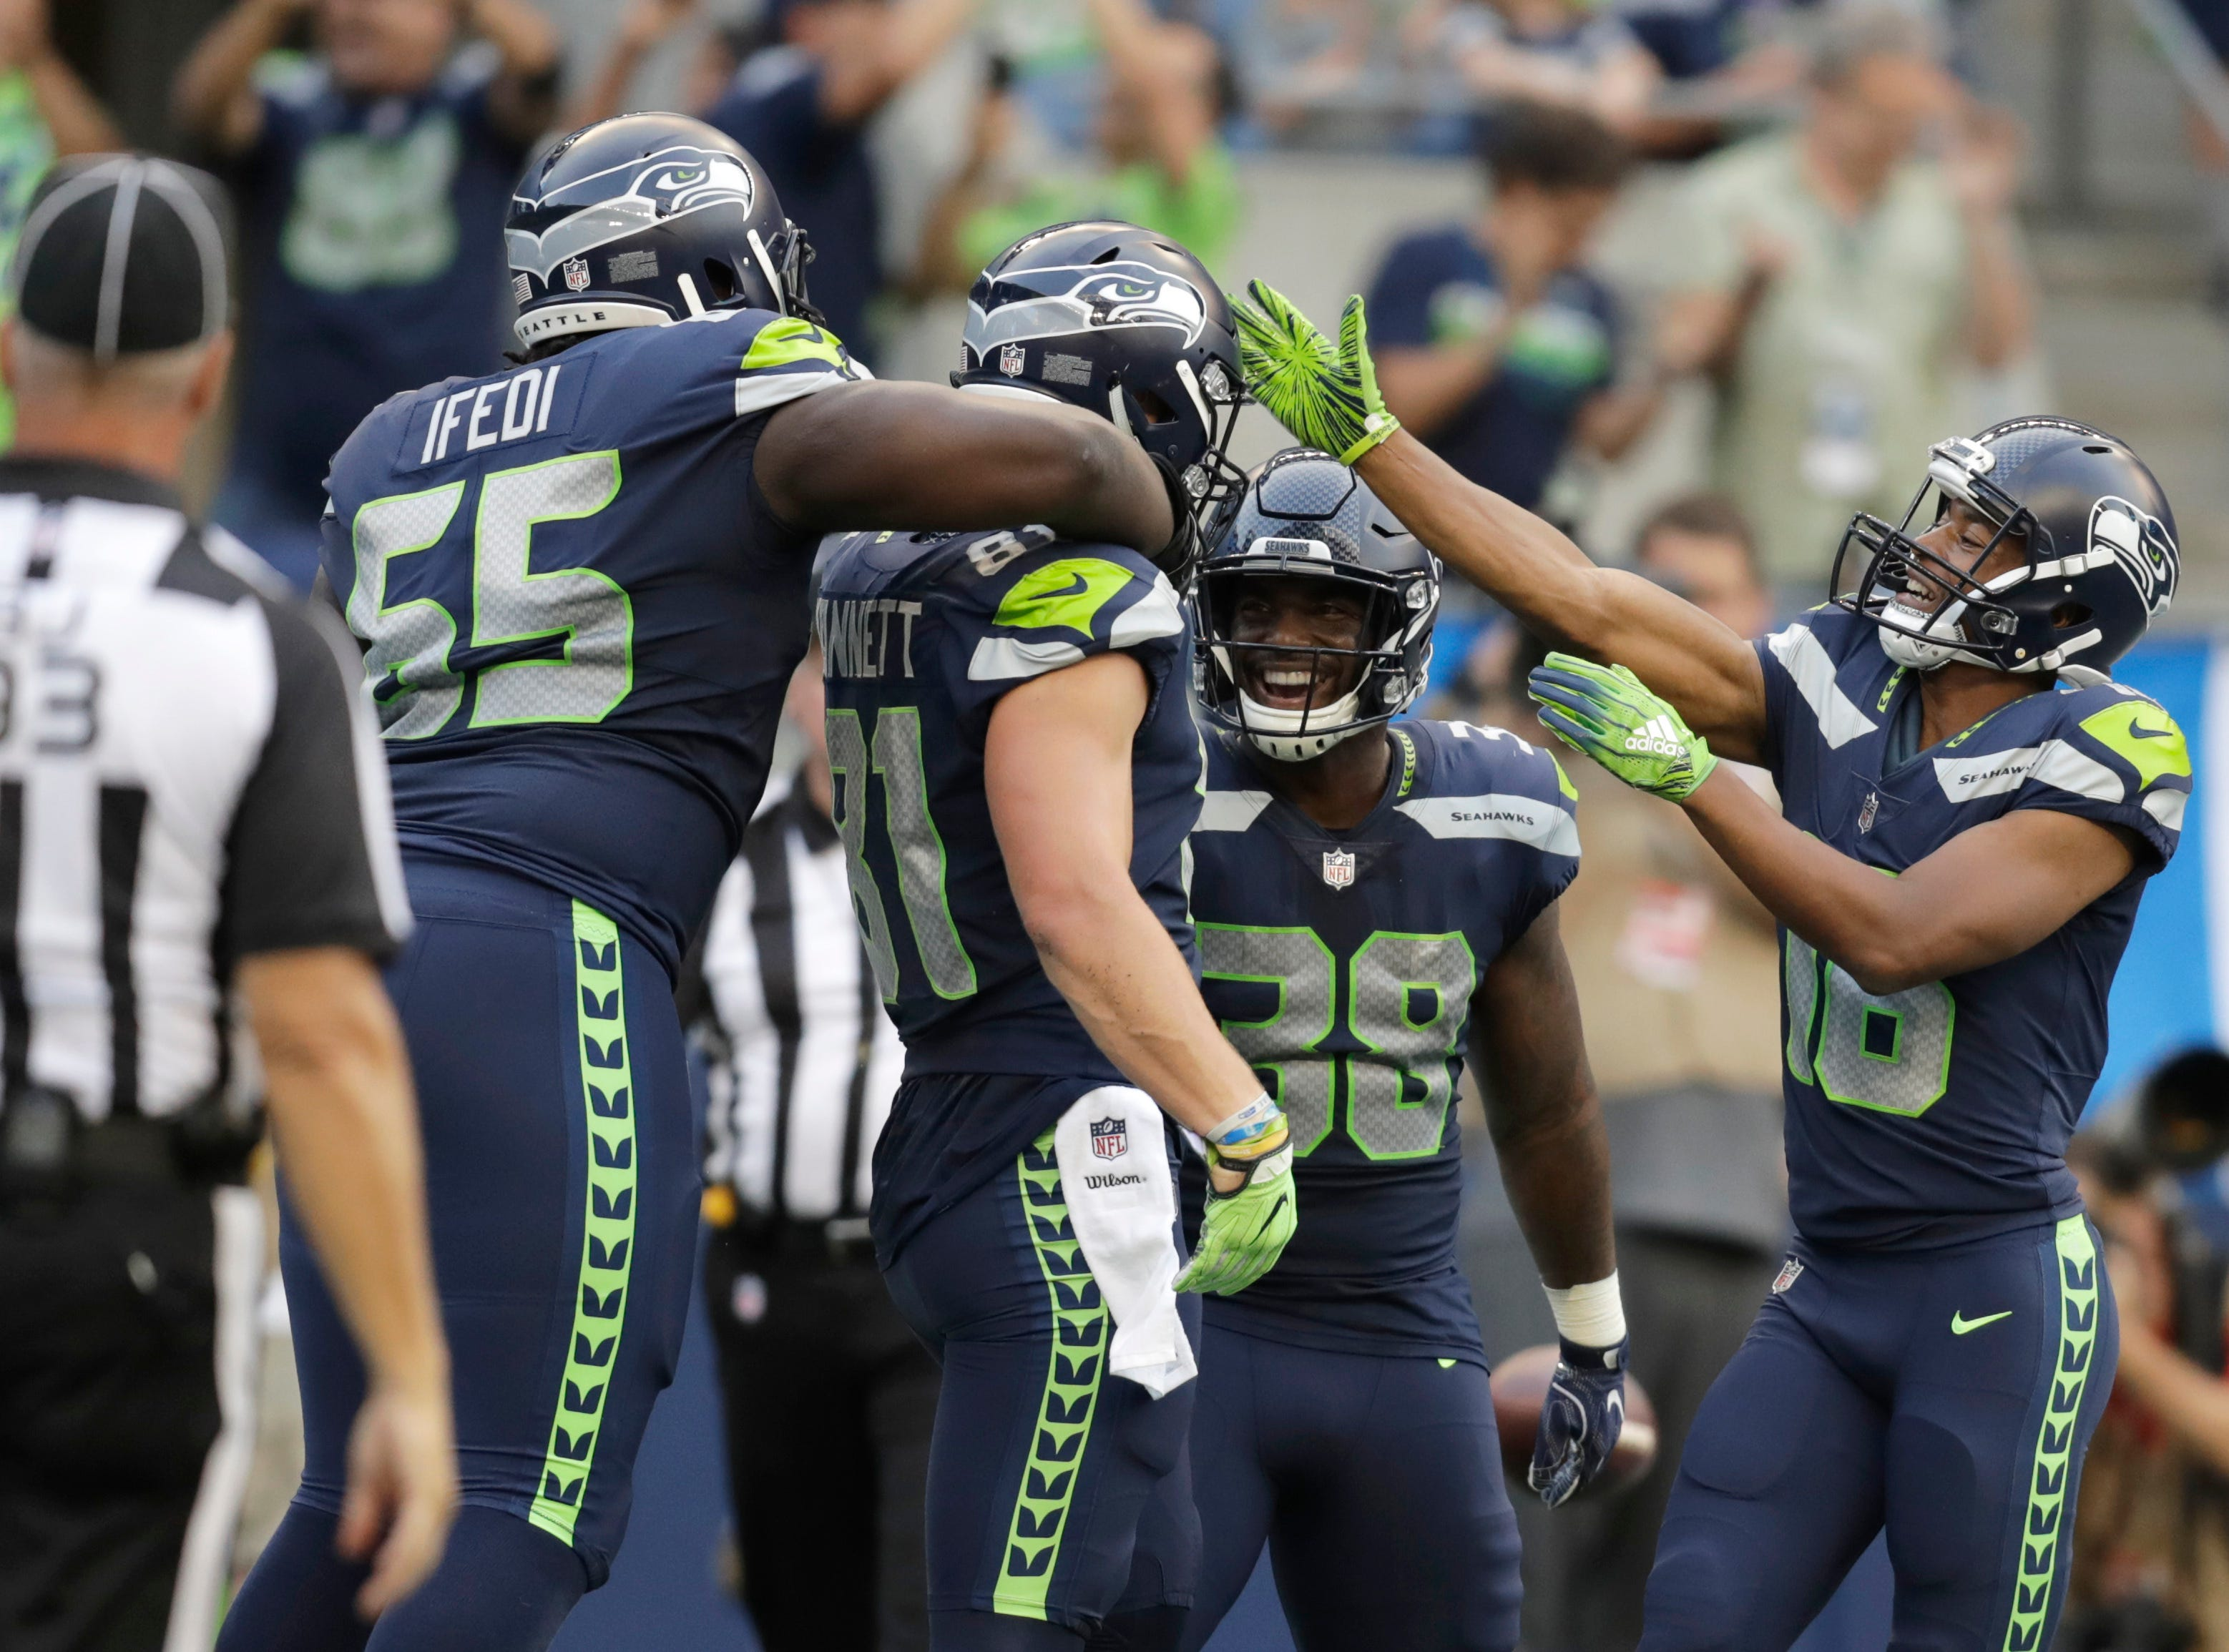 Seattle Seahawks tight end Nick Vannett, second from left, celebrates with teammates Germain Ifedi, left, Tyler Lockett, right, and Tre Madden, second from right, after making a catch for a touchdown against the Indianapolis Colts during the first half of an NFL football preseason game, Thursday, Aug. 9, 2018, in Seattle. (AP Photo/Stephen Brashear)